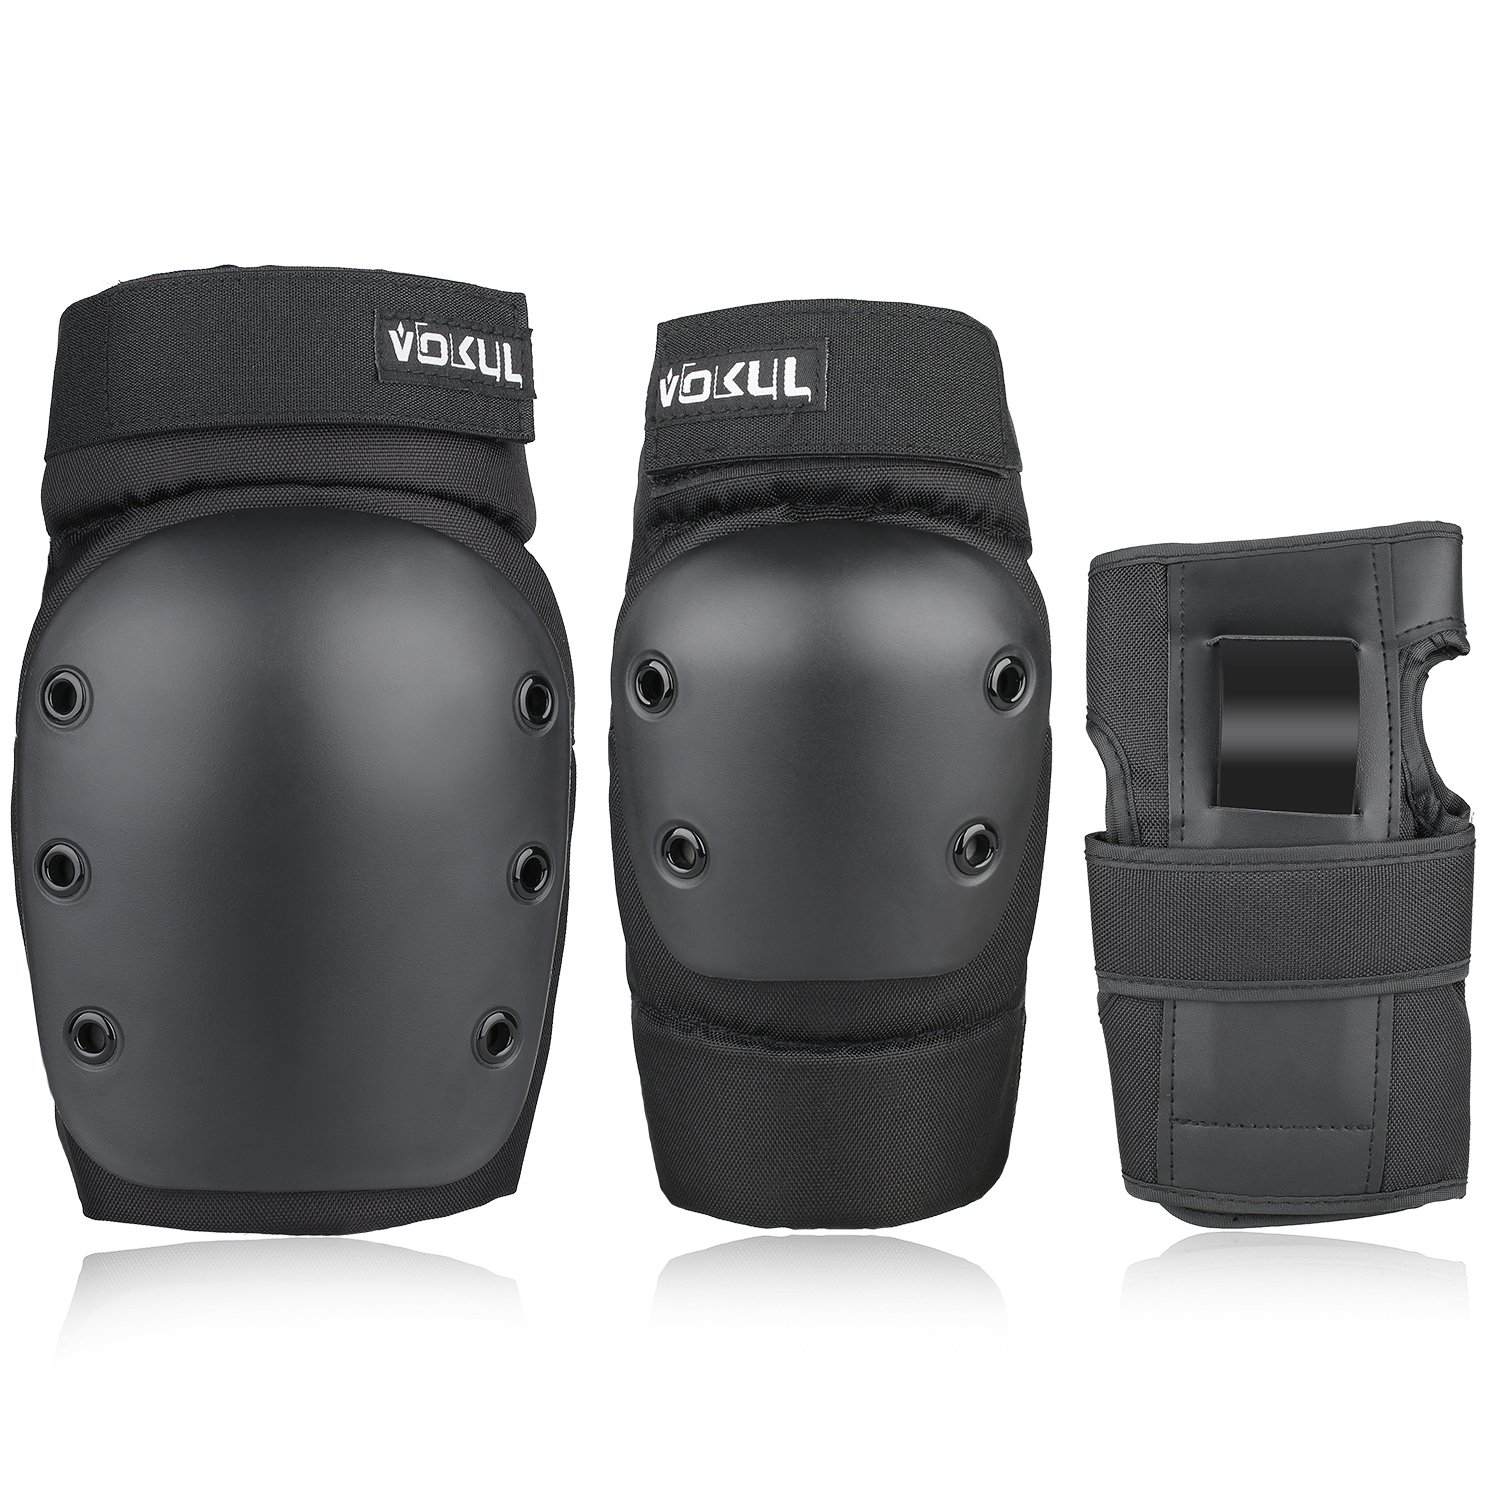 VOKUL 3 in 1 Protective Gear Set for Kids Youths Adults Safety Gear Protector Guards – Kids Knee Pads Elbow Pads Wrist Guards for Scooter Skating Skateboard Cycling Inline Biking BMX Bicycle